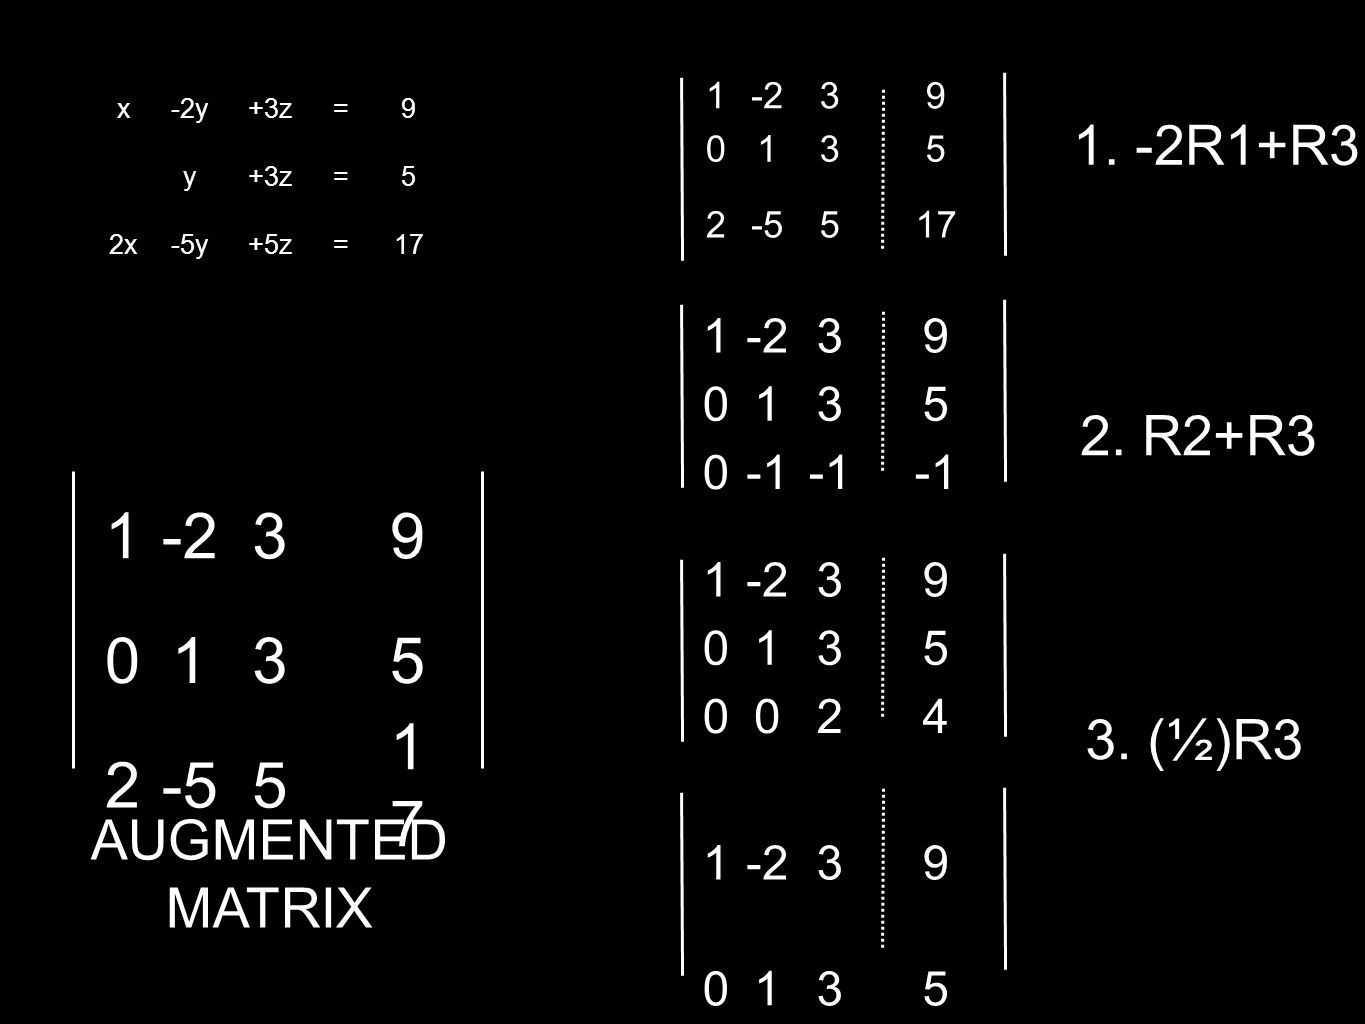 1 -2 3 9 5 2 -5 17 1. -2R1+R3 2. R2+R3 3. (½)R3 AUGMENTED MATRIX 1 -2